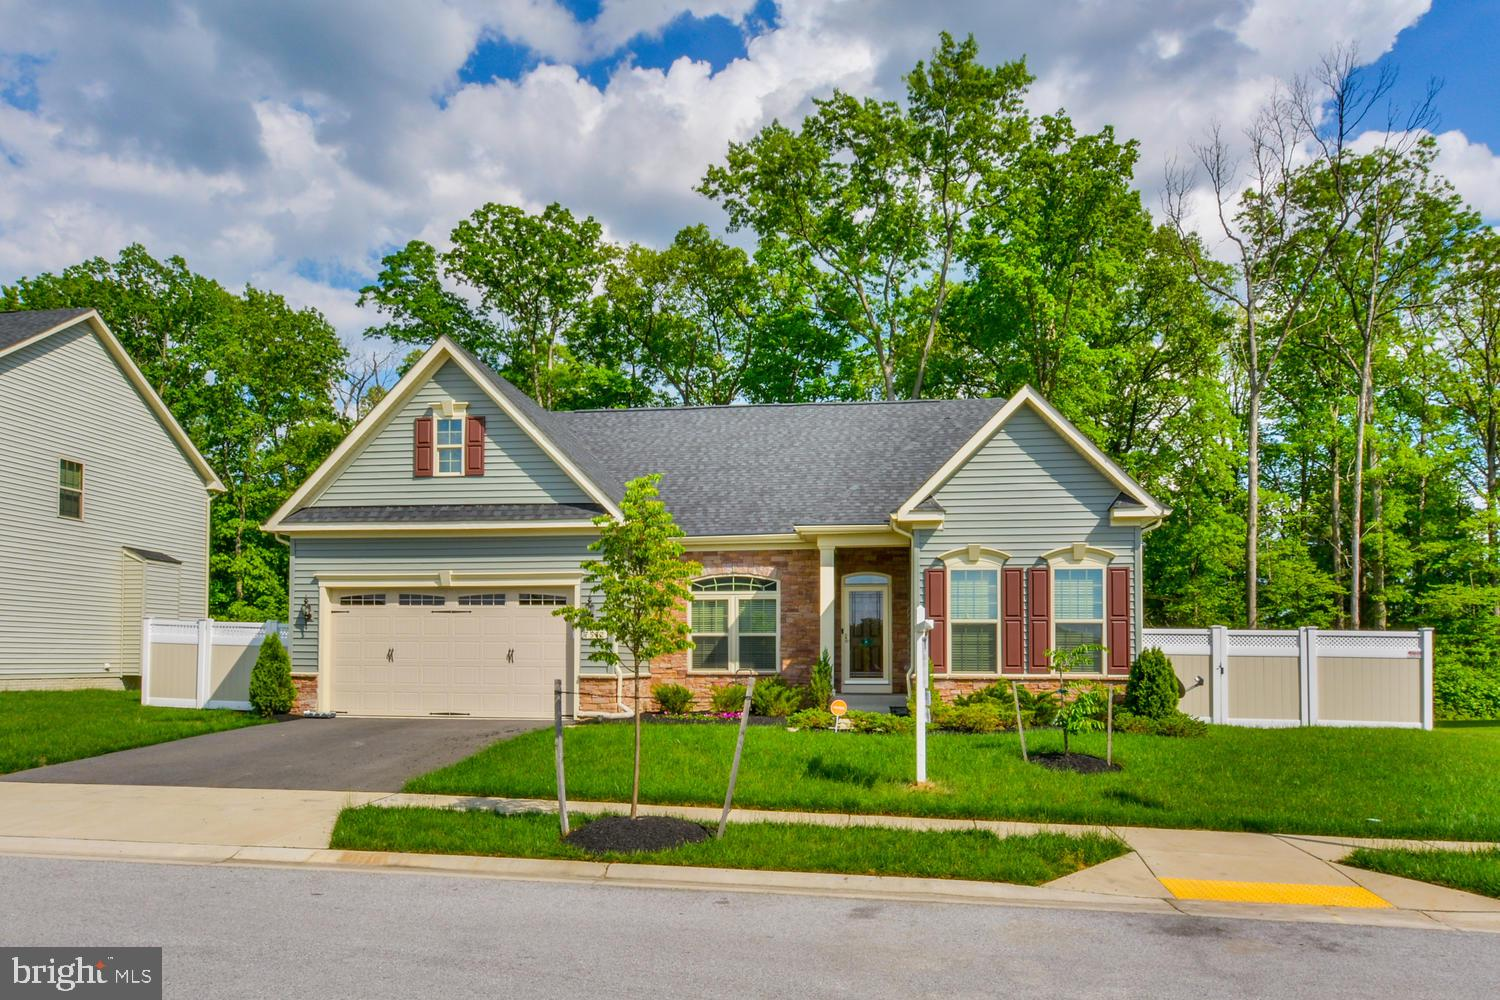 7552 ARUNDEL WOODS DRIVE, JESSUP, MD 20794